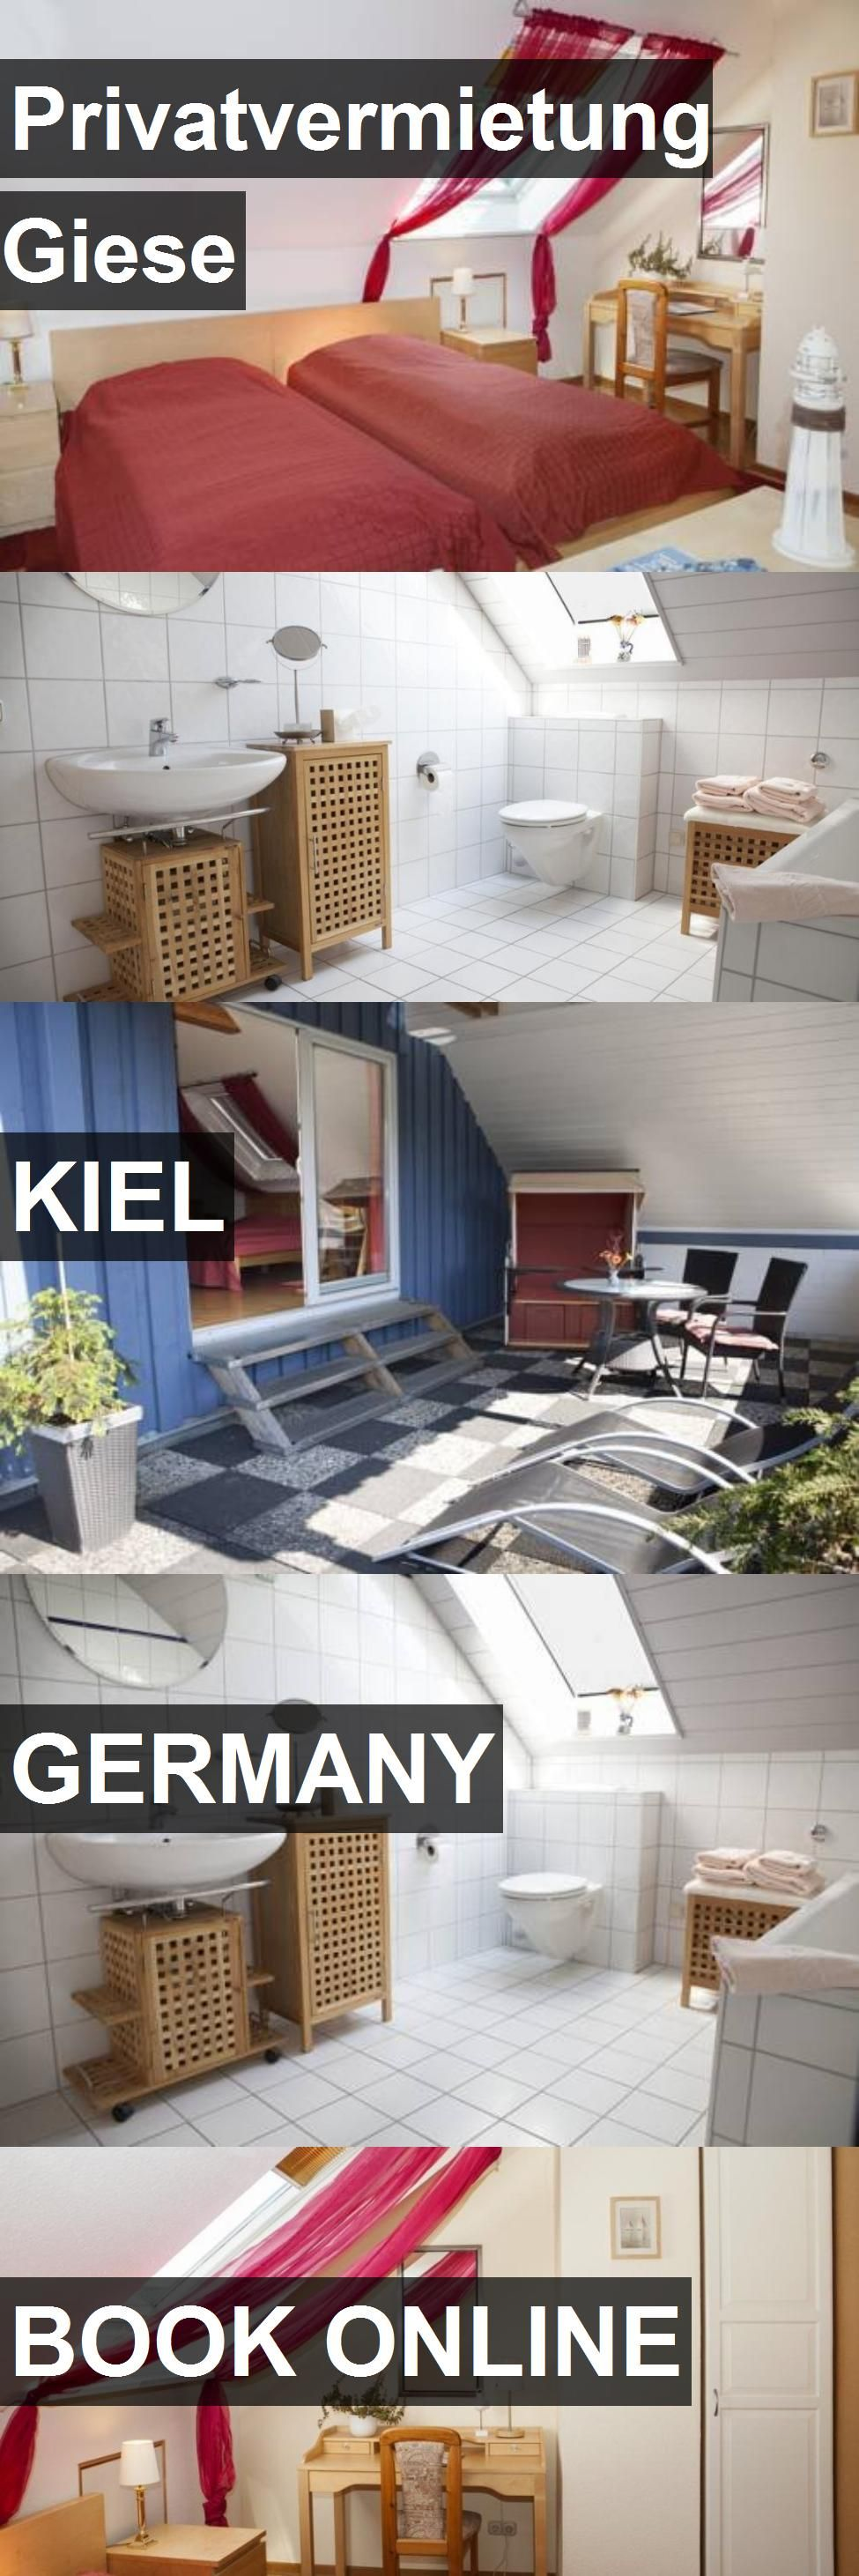 Hotel Privatvermietung Giese in Kiel, Germany. For more